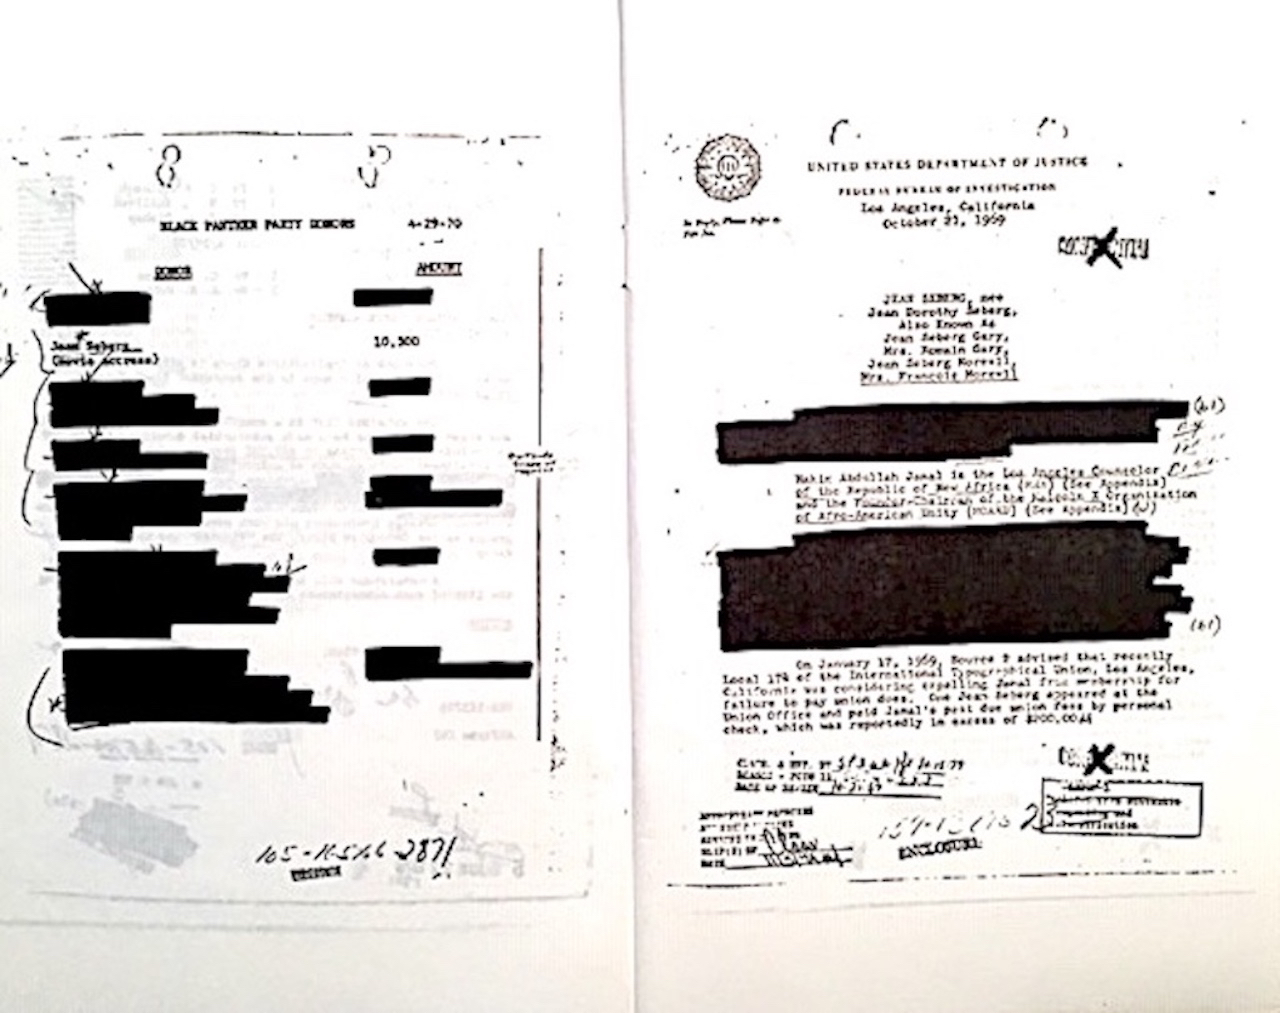 Margia Kramer's artwork featuring a black and white photo print of pages from actress Jean Seberg's FBI file.